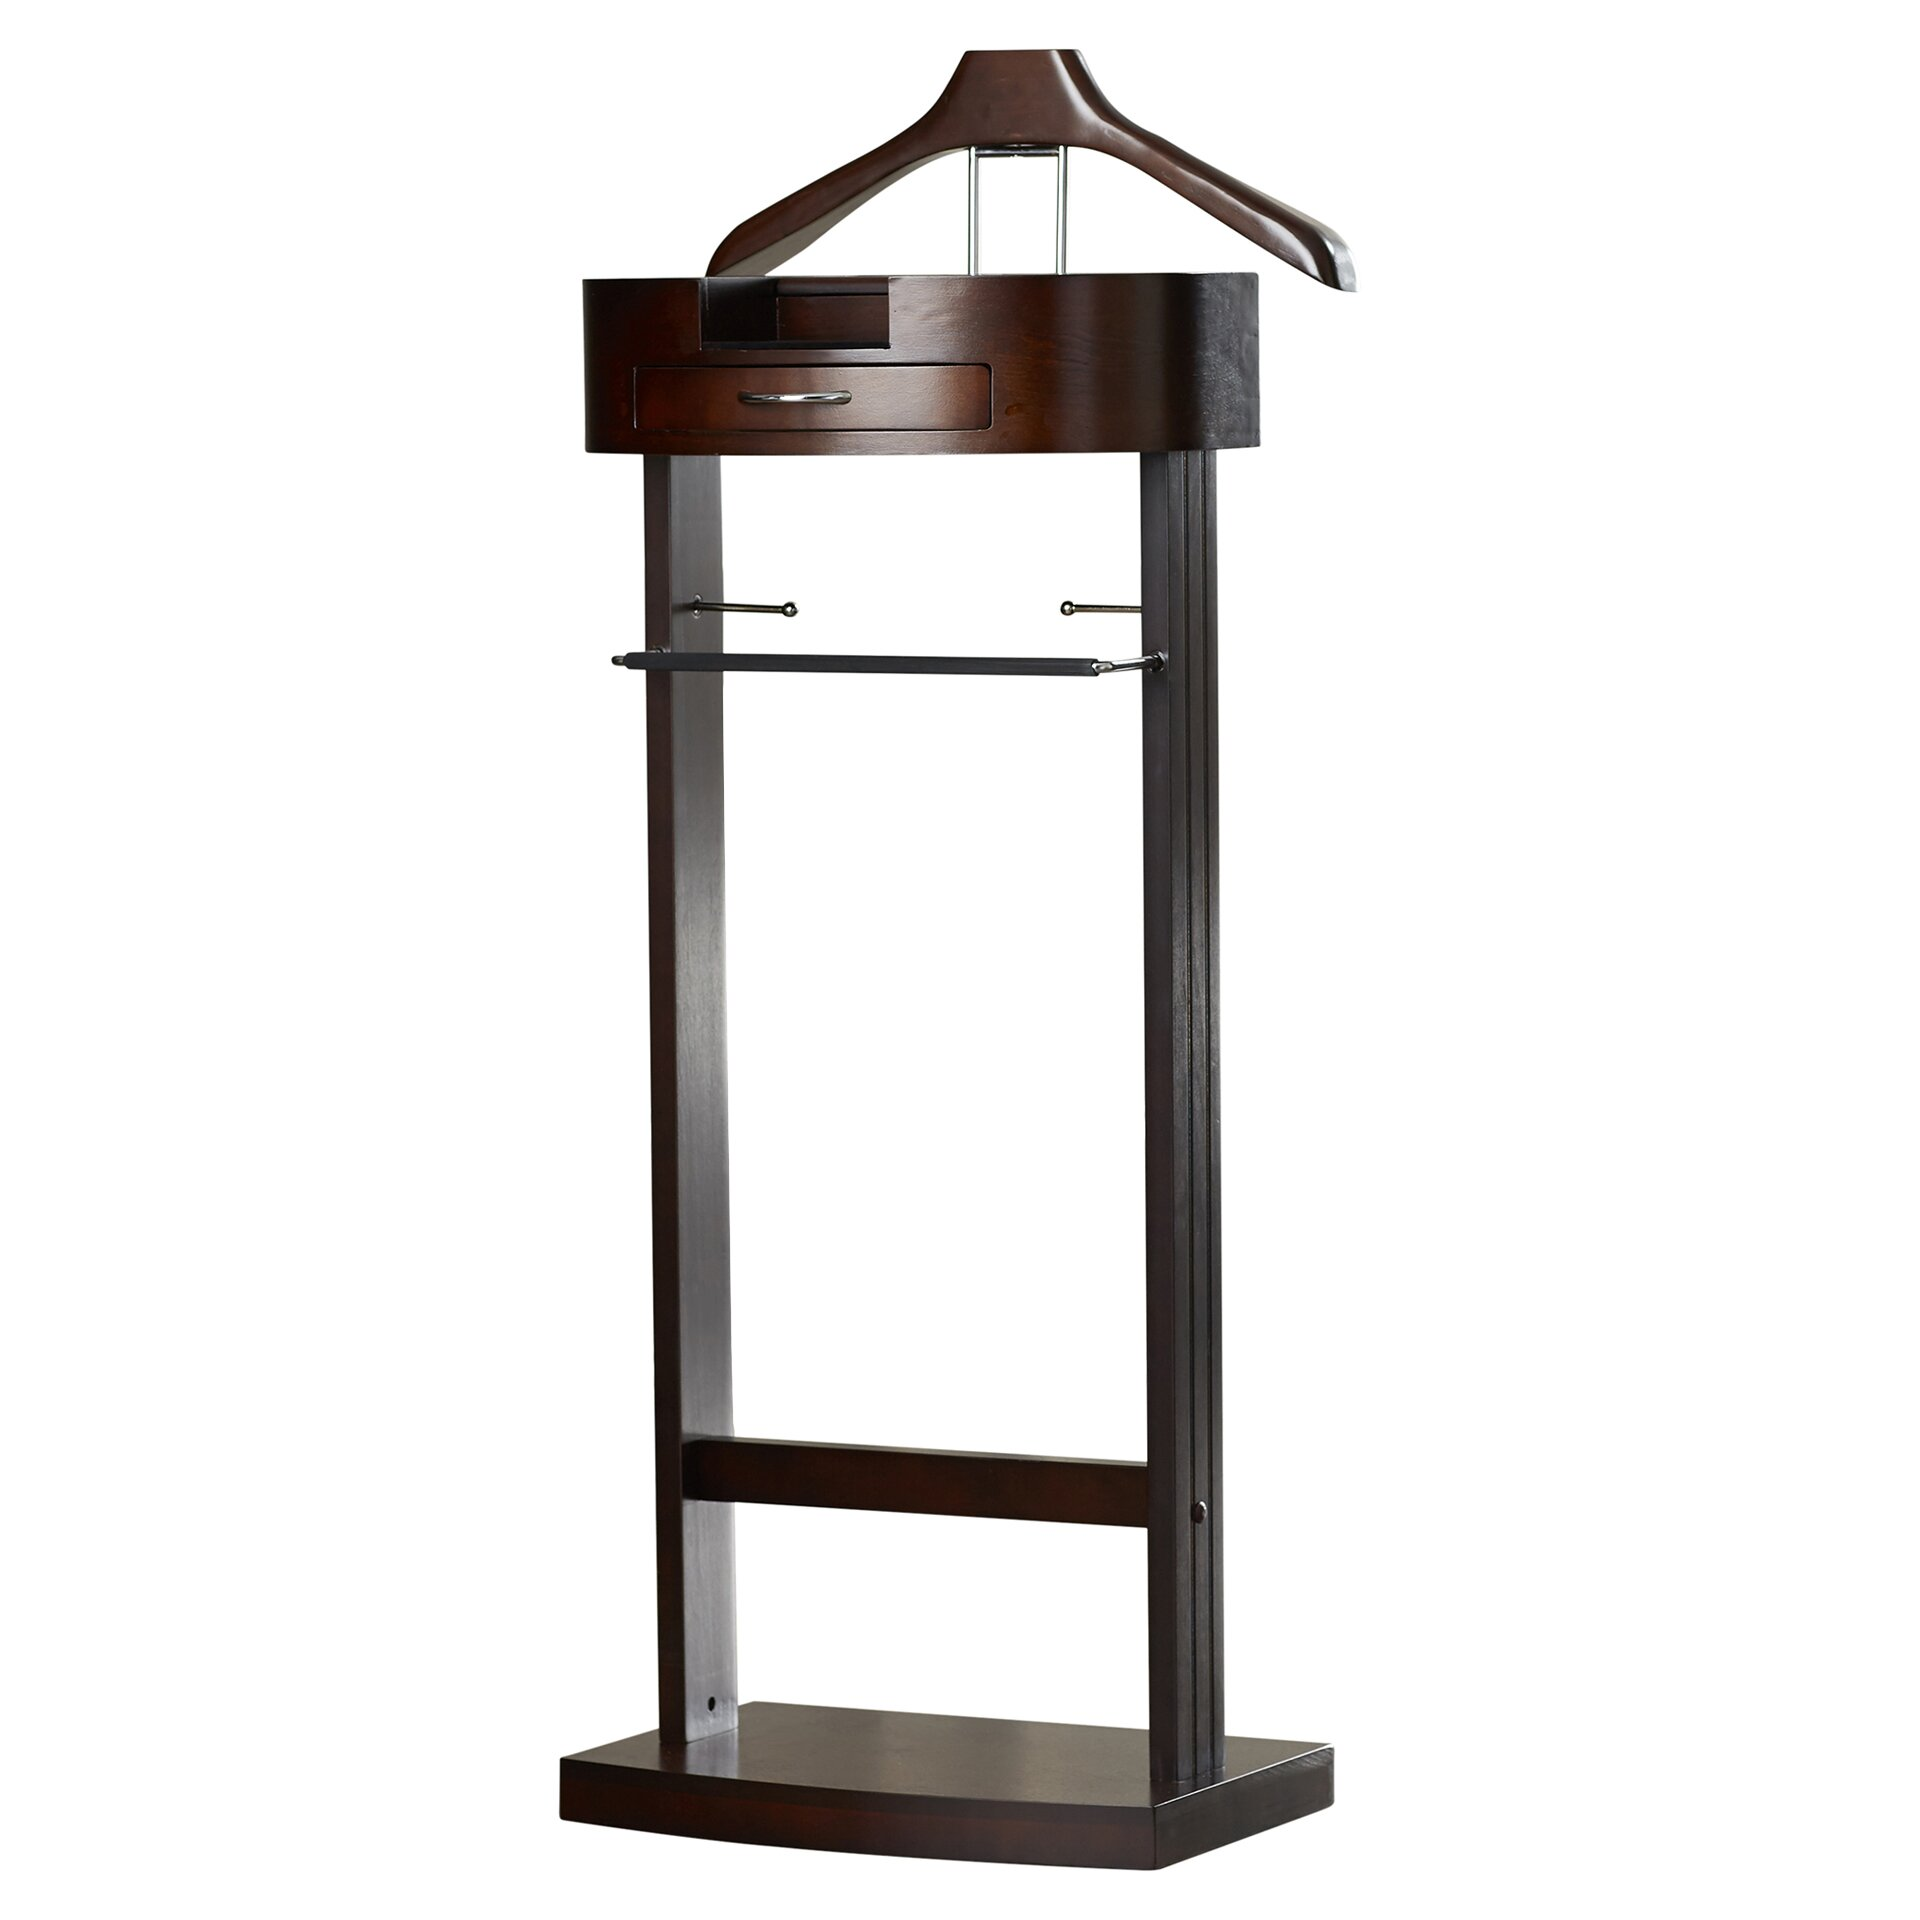 Trent austin design homewood valet stand reviews for Stand 2 b